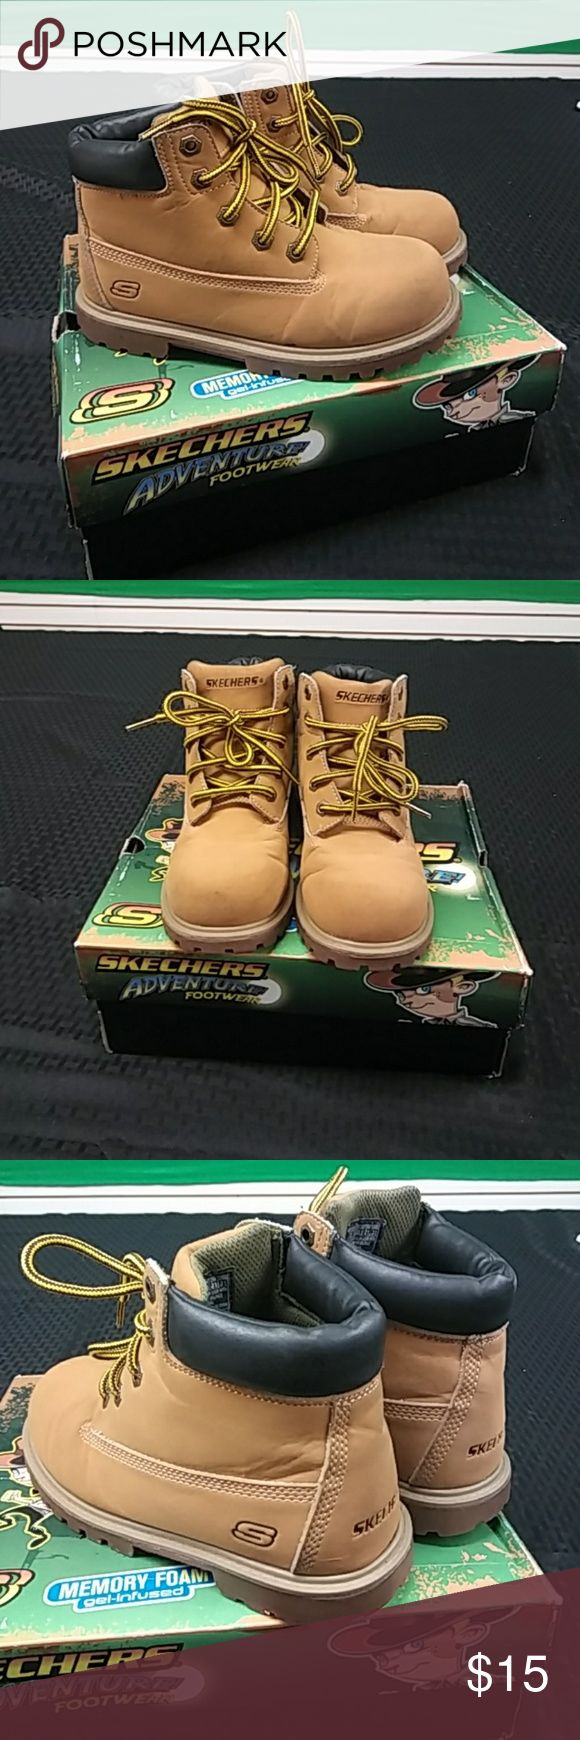 Boys Skechers Boots Kids classic wheat/ tan color boots with memory foam used in decent condition Skechers Shoes Boots